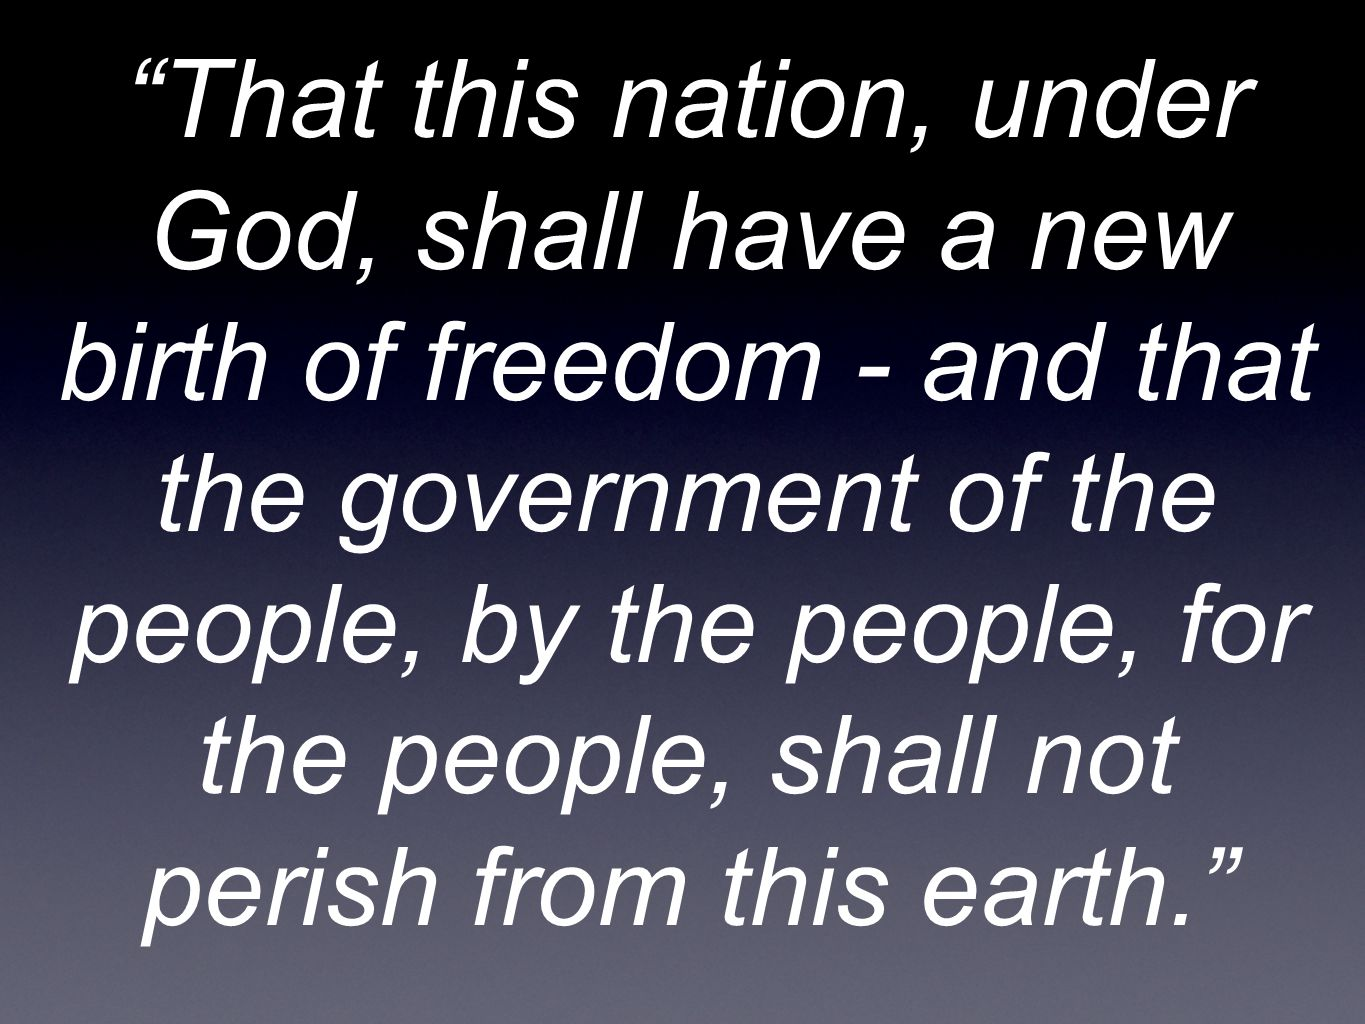 That this nation, under God, shall have a new birth of freedom - and that the government of the people, by the people, for the people, shall not perish from this earth.